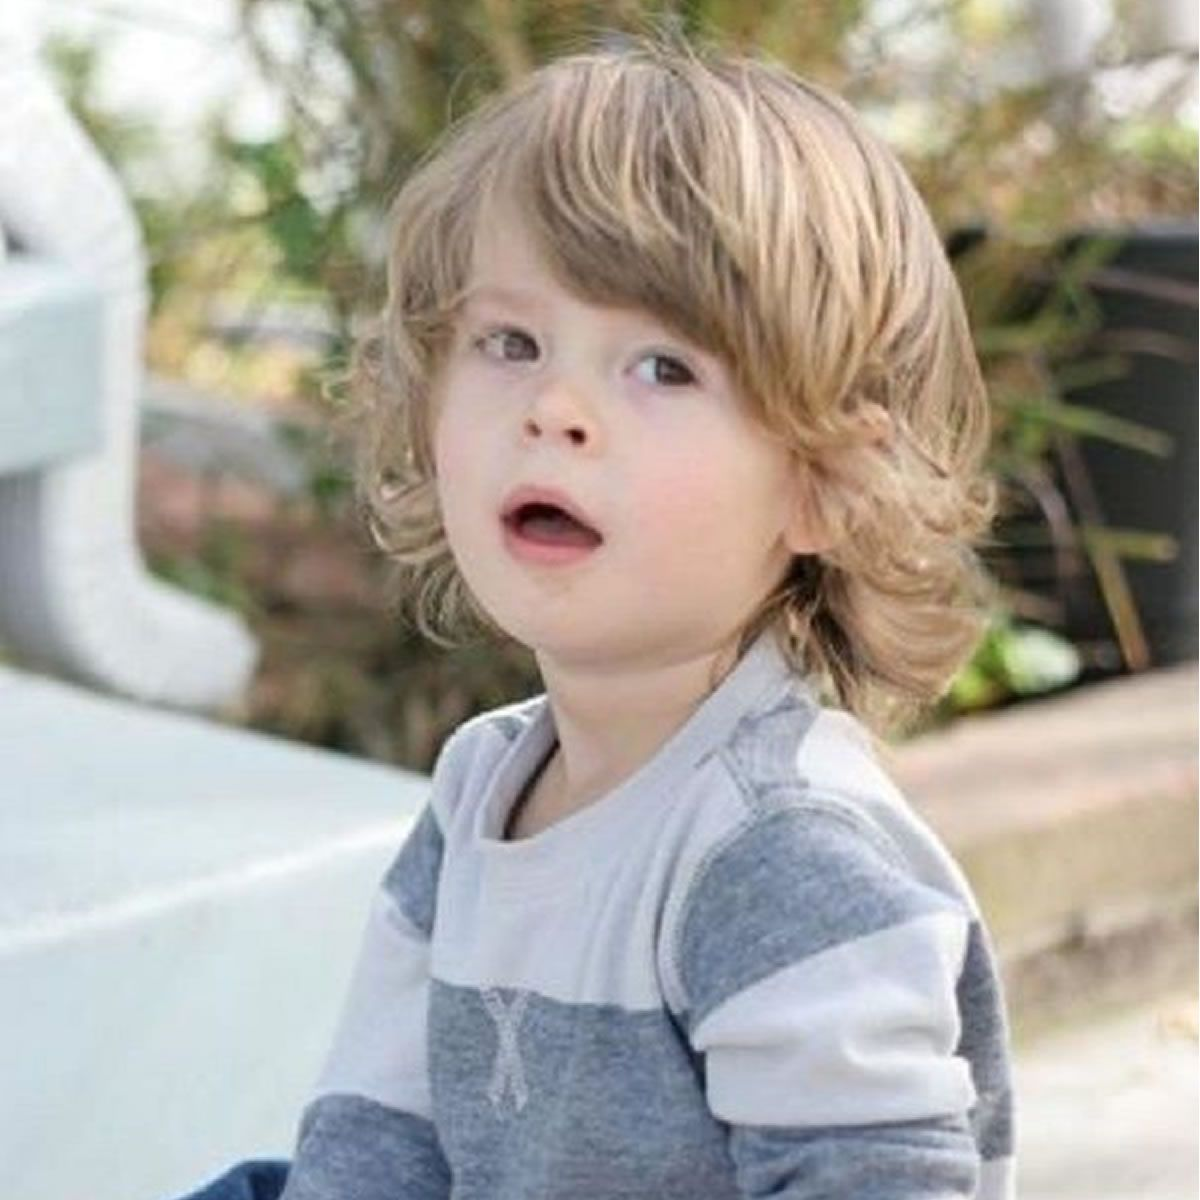 Top Inspiration 24 Hairstyle 2019 For Boy In 2020 Boys Long